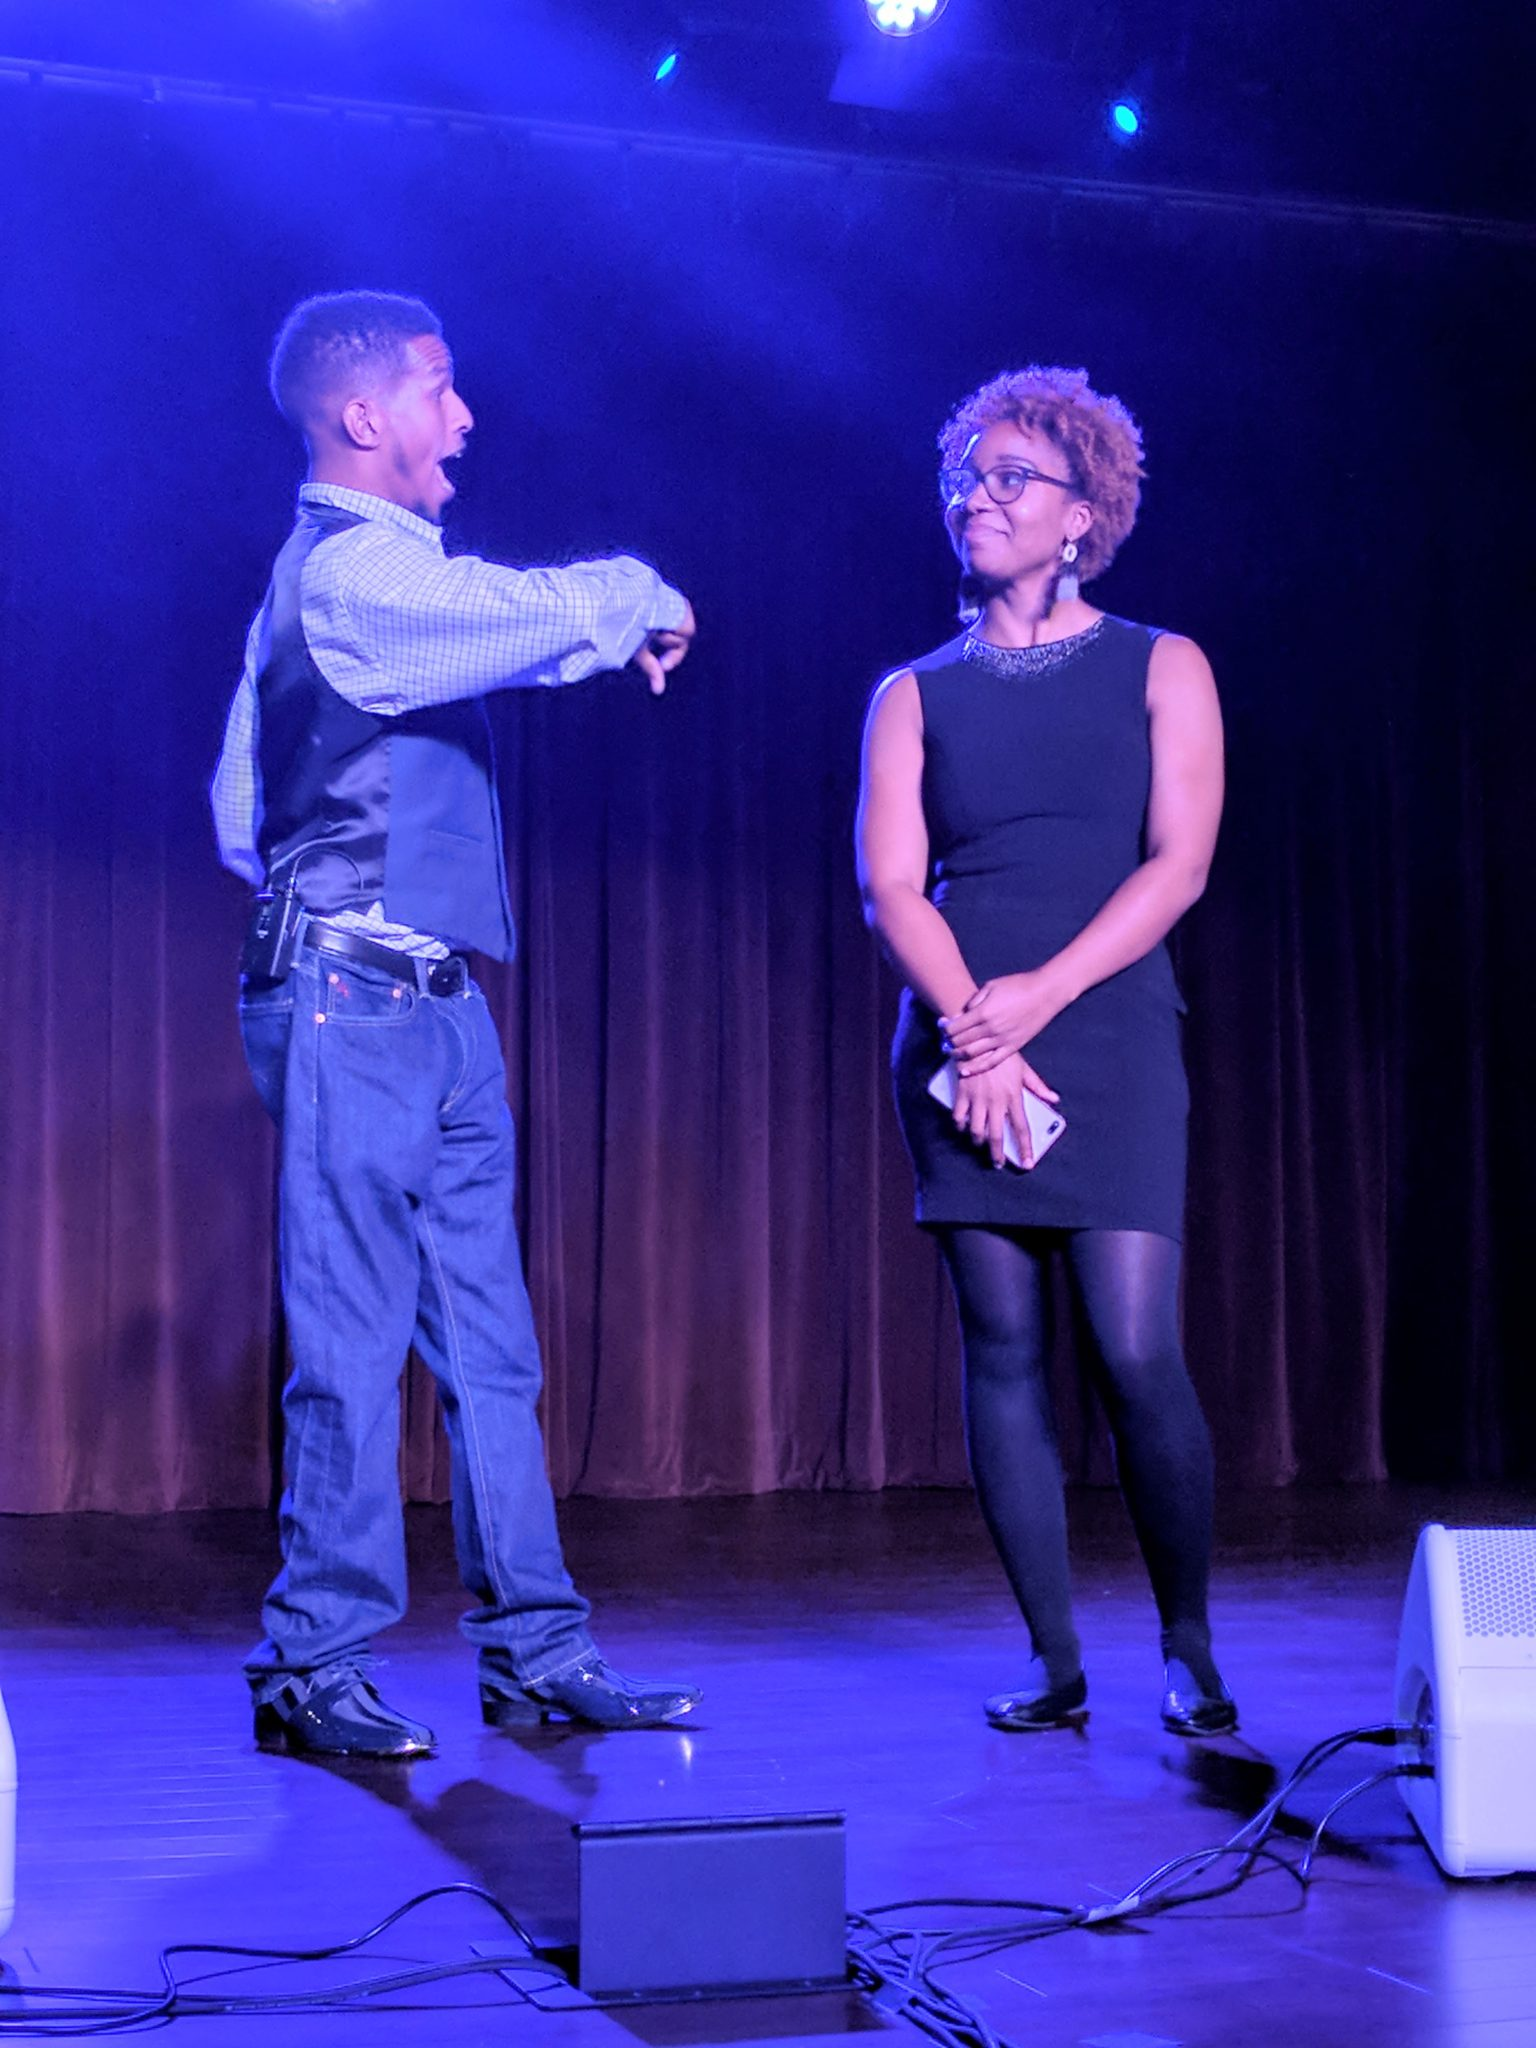 Mr. MiraKool (comedian with cerebral palsy) is pictured teasing SHOWAbility BOard member Maia Miller as part of his comedy act.